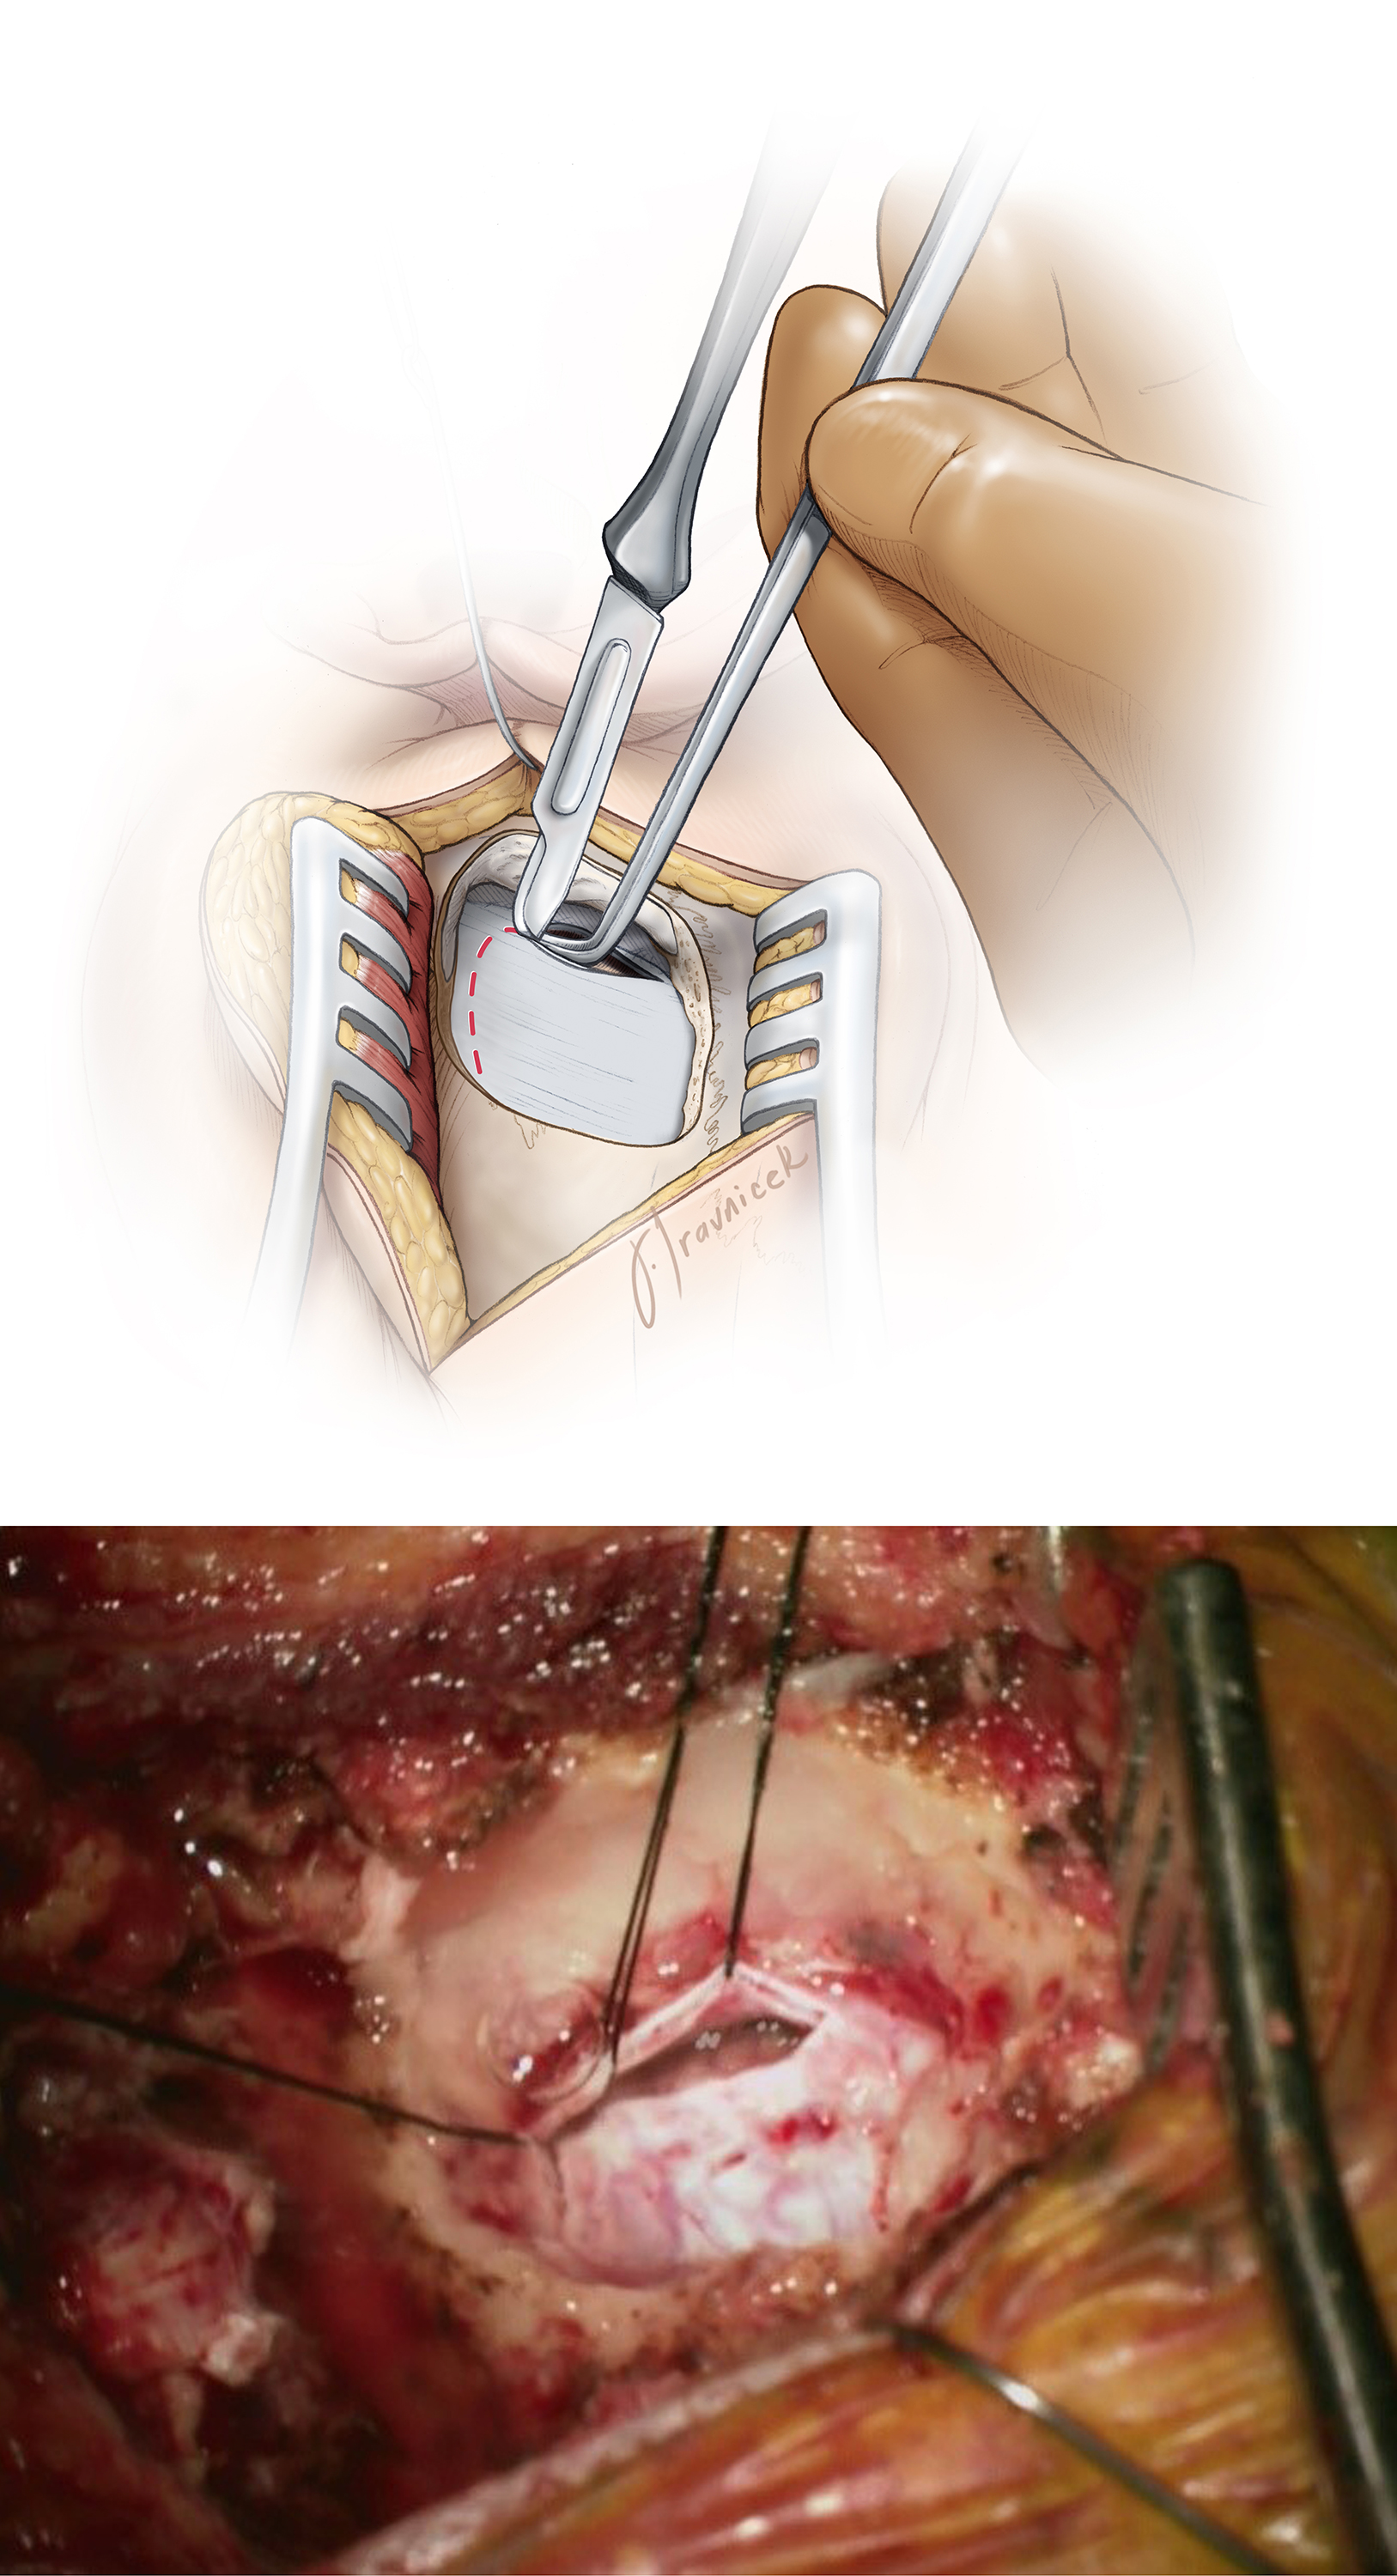 Figure 9: The method for dural opening (top image). A magnified operative photo also demonstrates the extent of craniotomy and dural opening (bottom image). There is no need to expose the transverse sinus. Unlike the linear skin incision, the curvilinear incision mobilizes the retracted myocutaneous flap inferiorly and prevents it from increasing the operator's working distance.